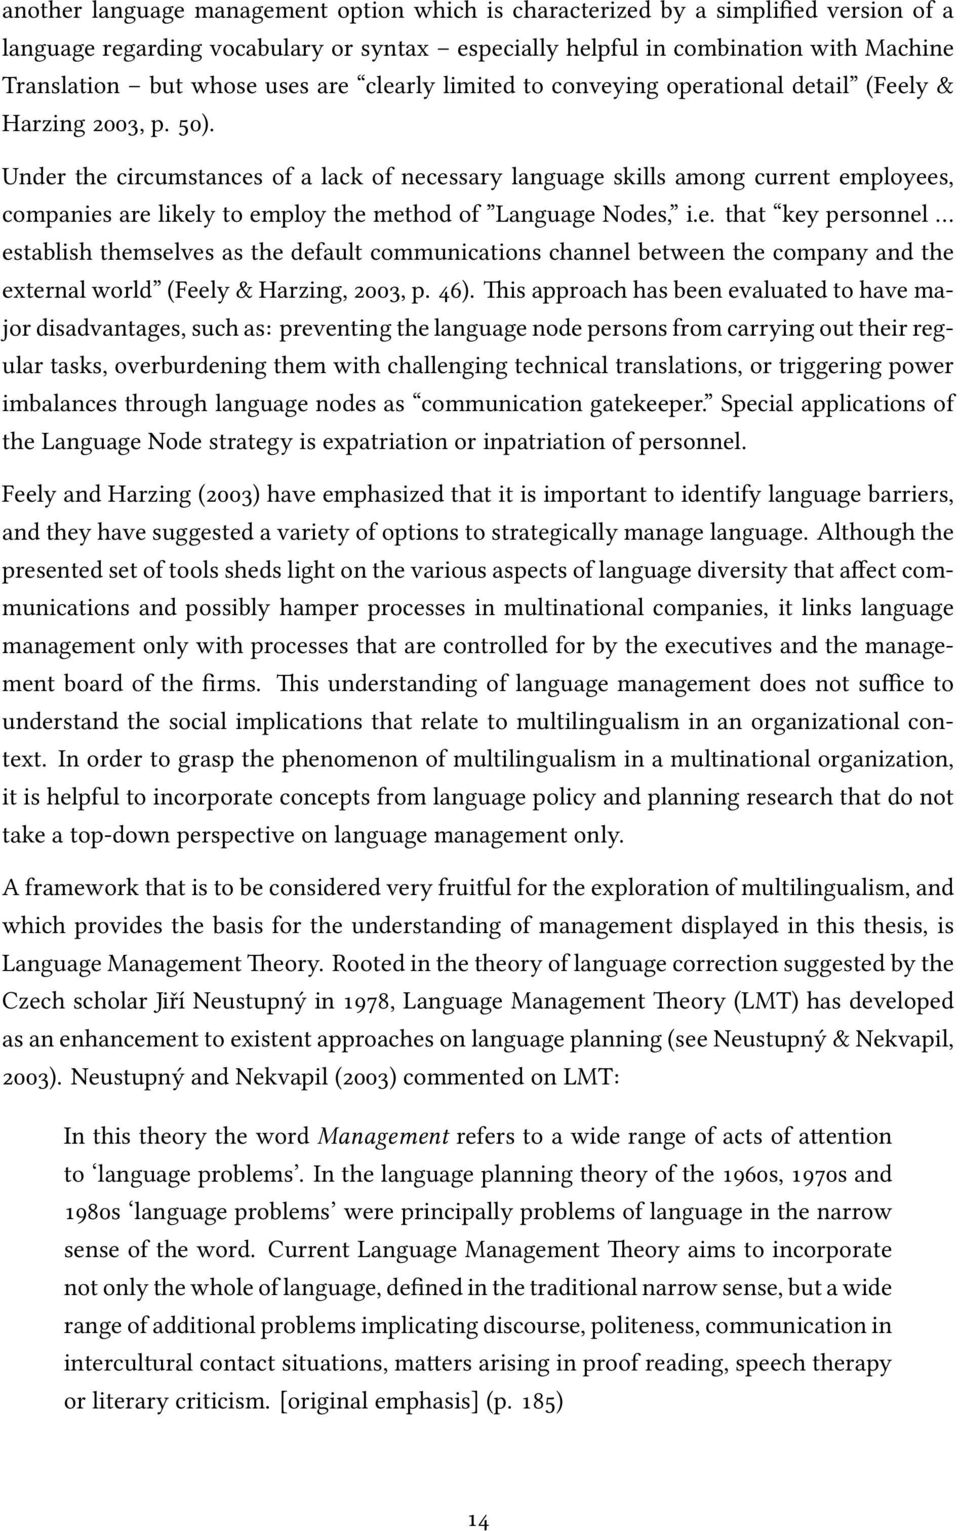 Under the circumstances of a lack of necessary language skills among current employees, companies are likely to employ the method of Language Nodes, i.e. that key personnel establish themselves as the default communications channel between the company and the external world (Feely & Harzing, 2003, p.